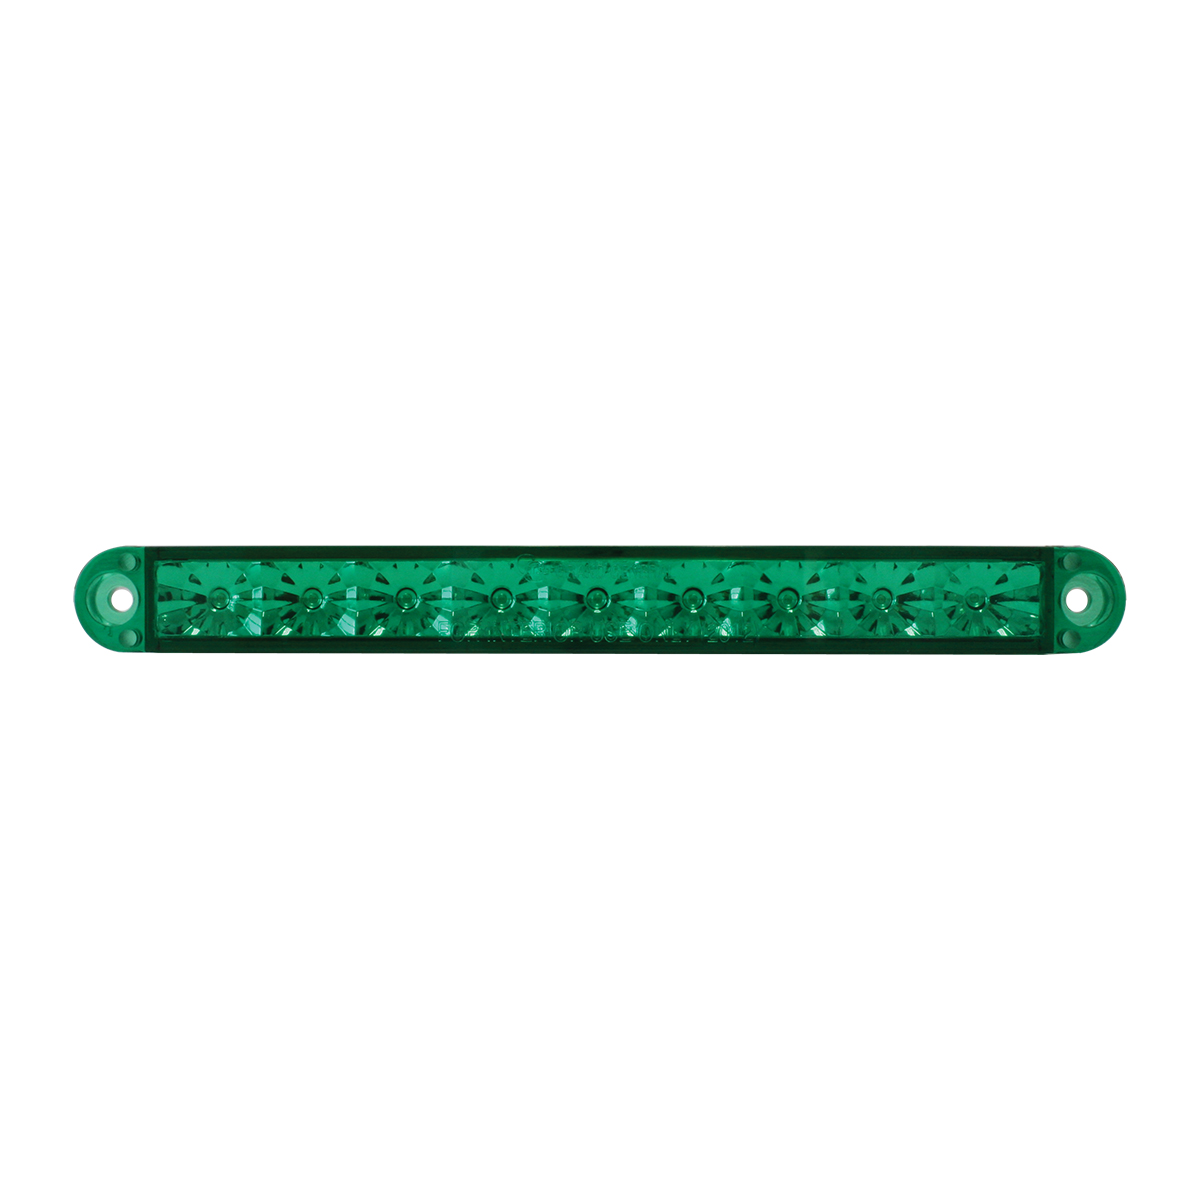 "76146 6.5"" Flush Mount LED Light Bar"